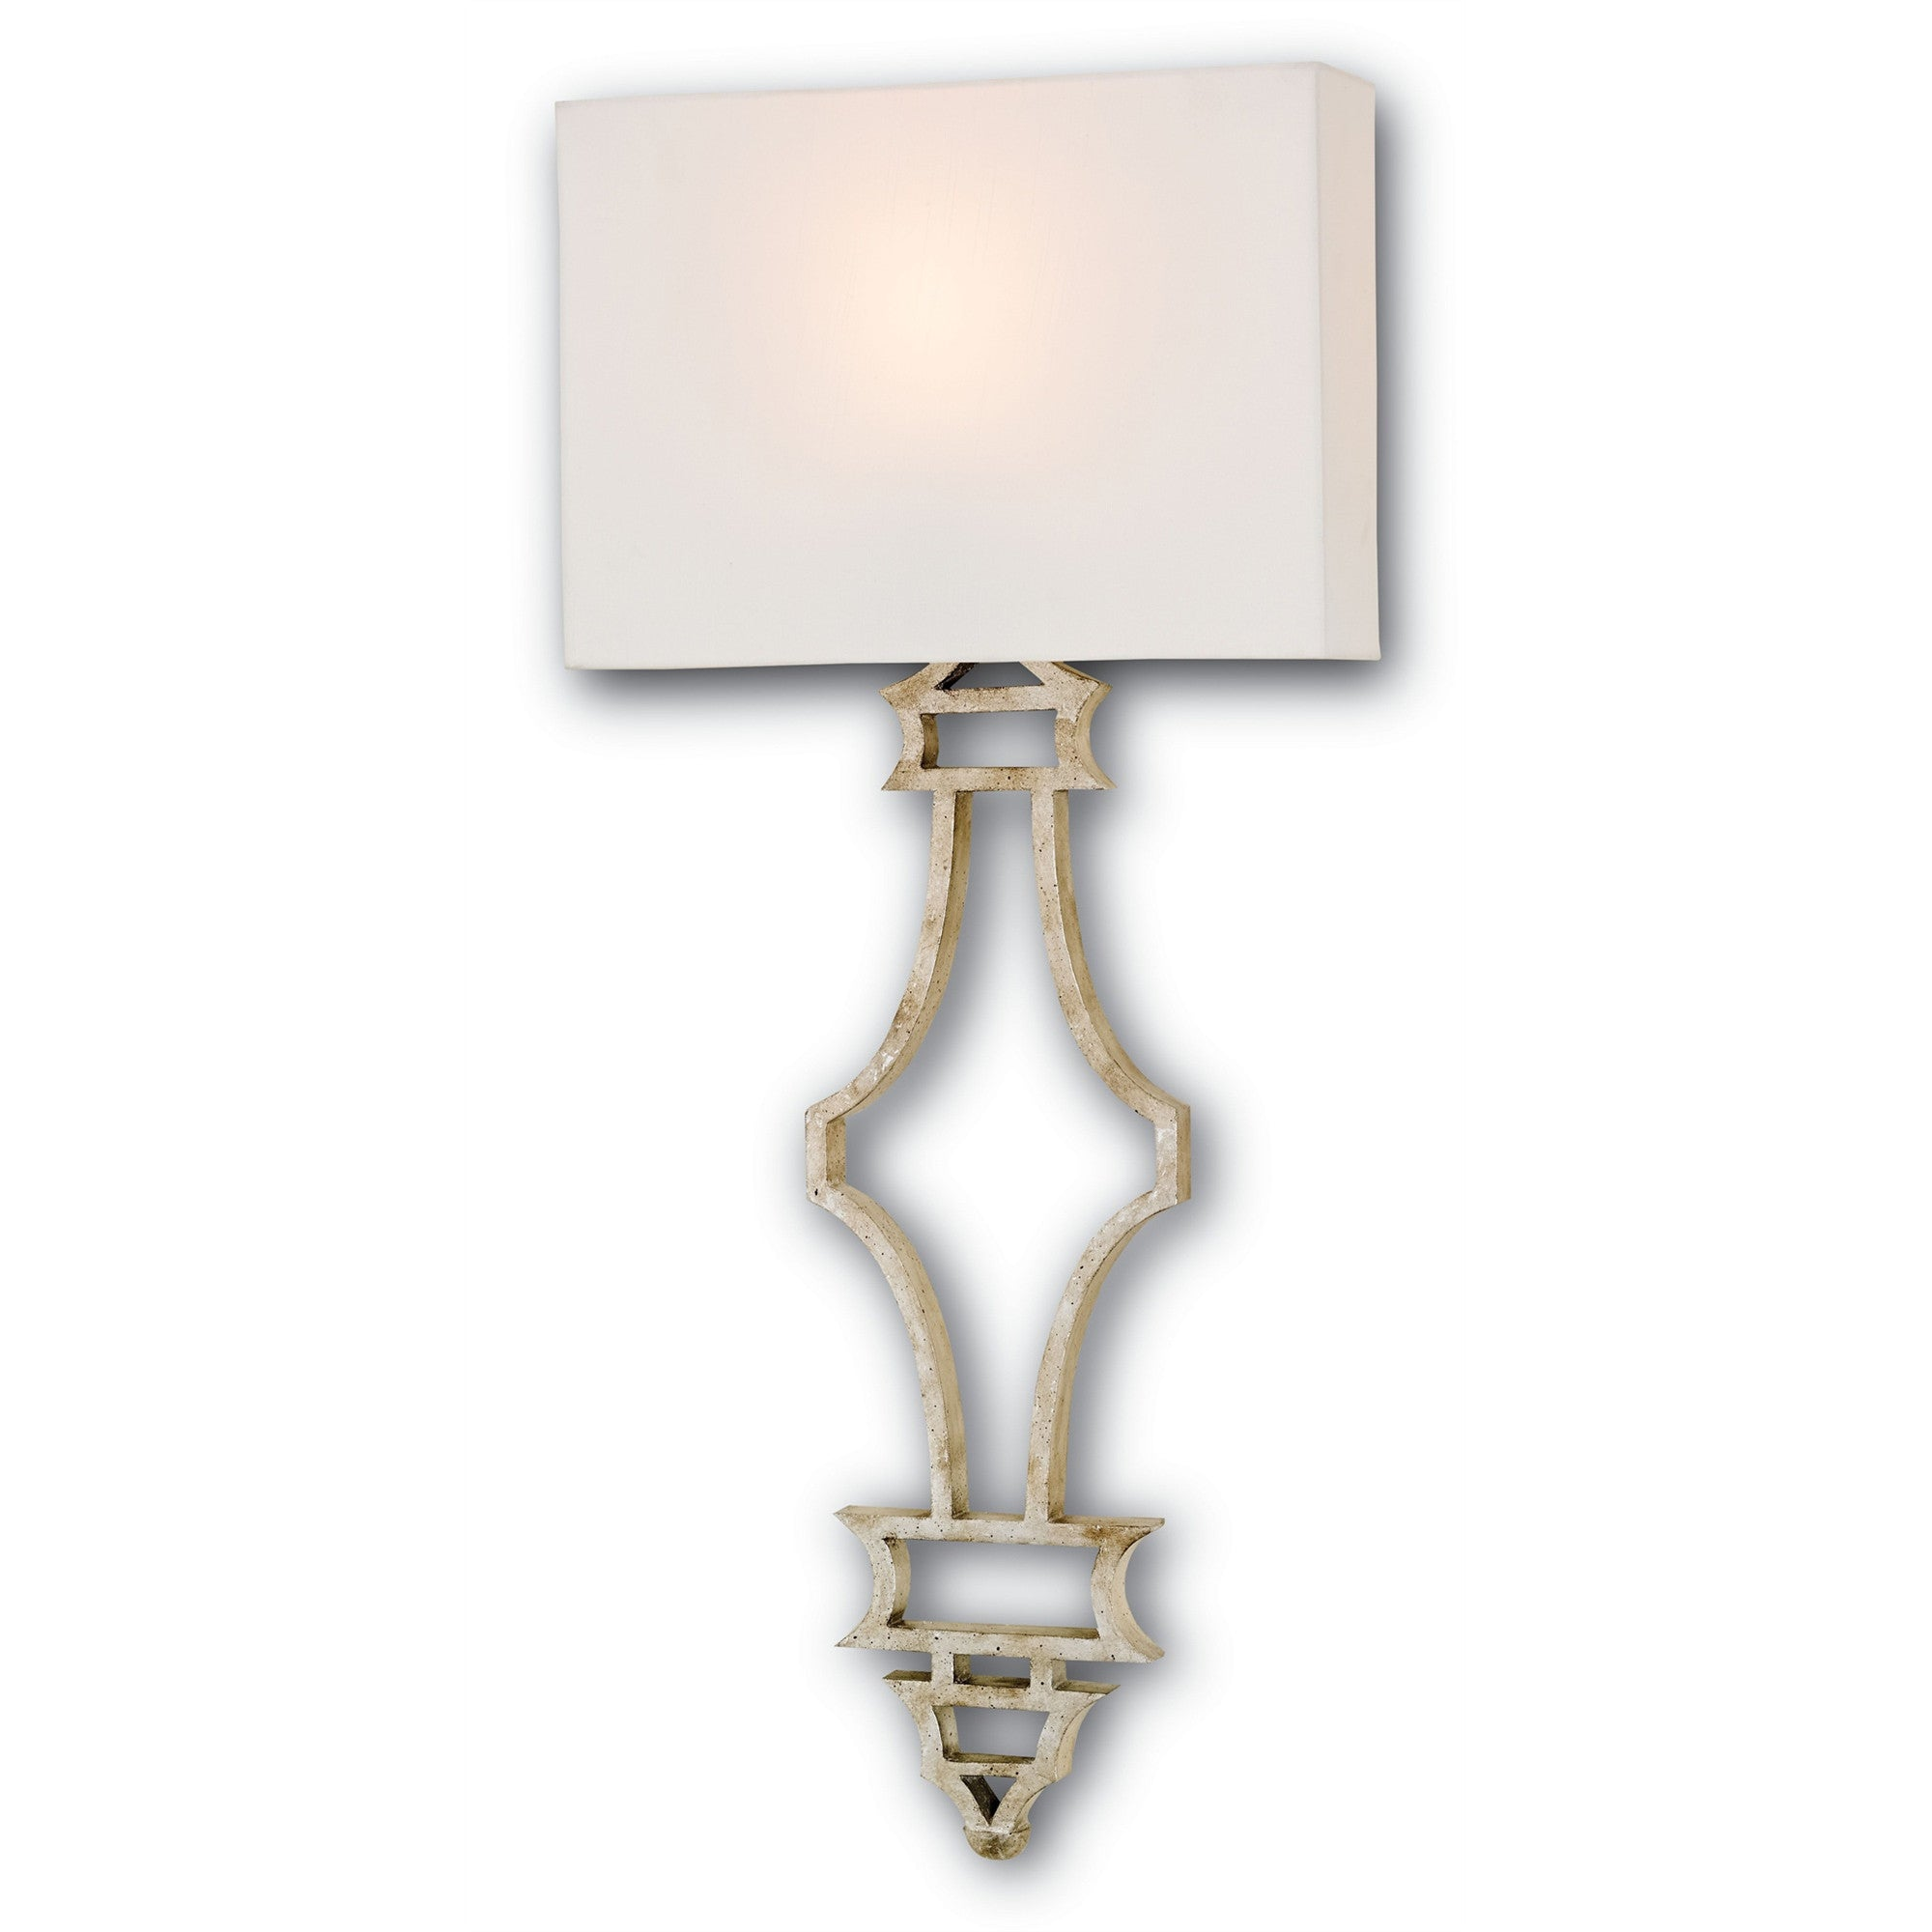 Currey and Co - Eternity Wall Sconce